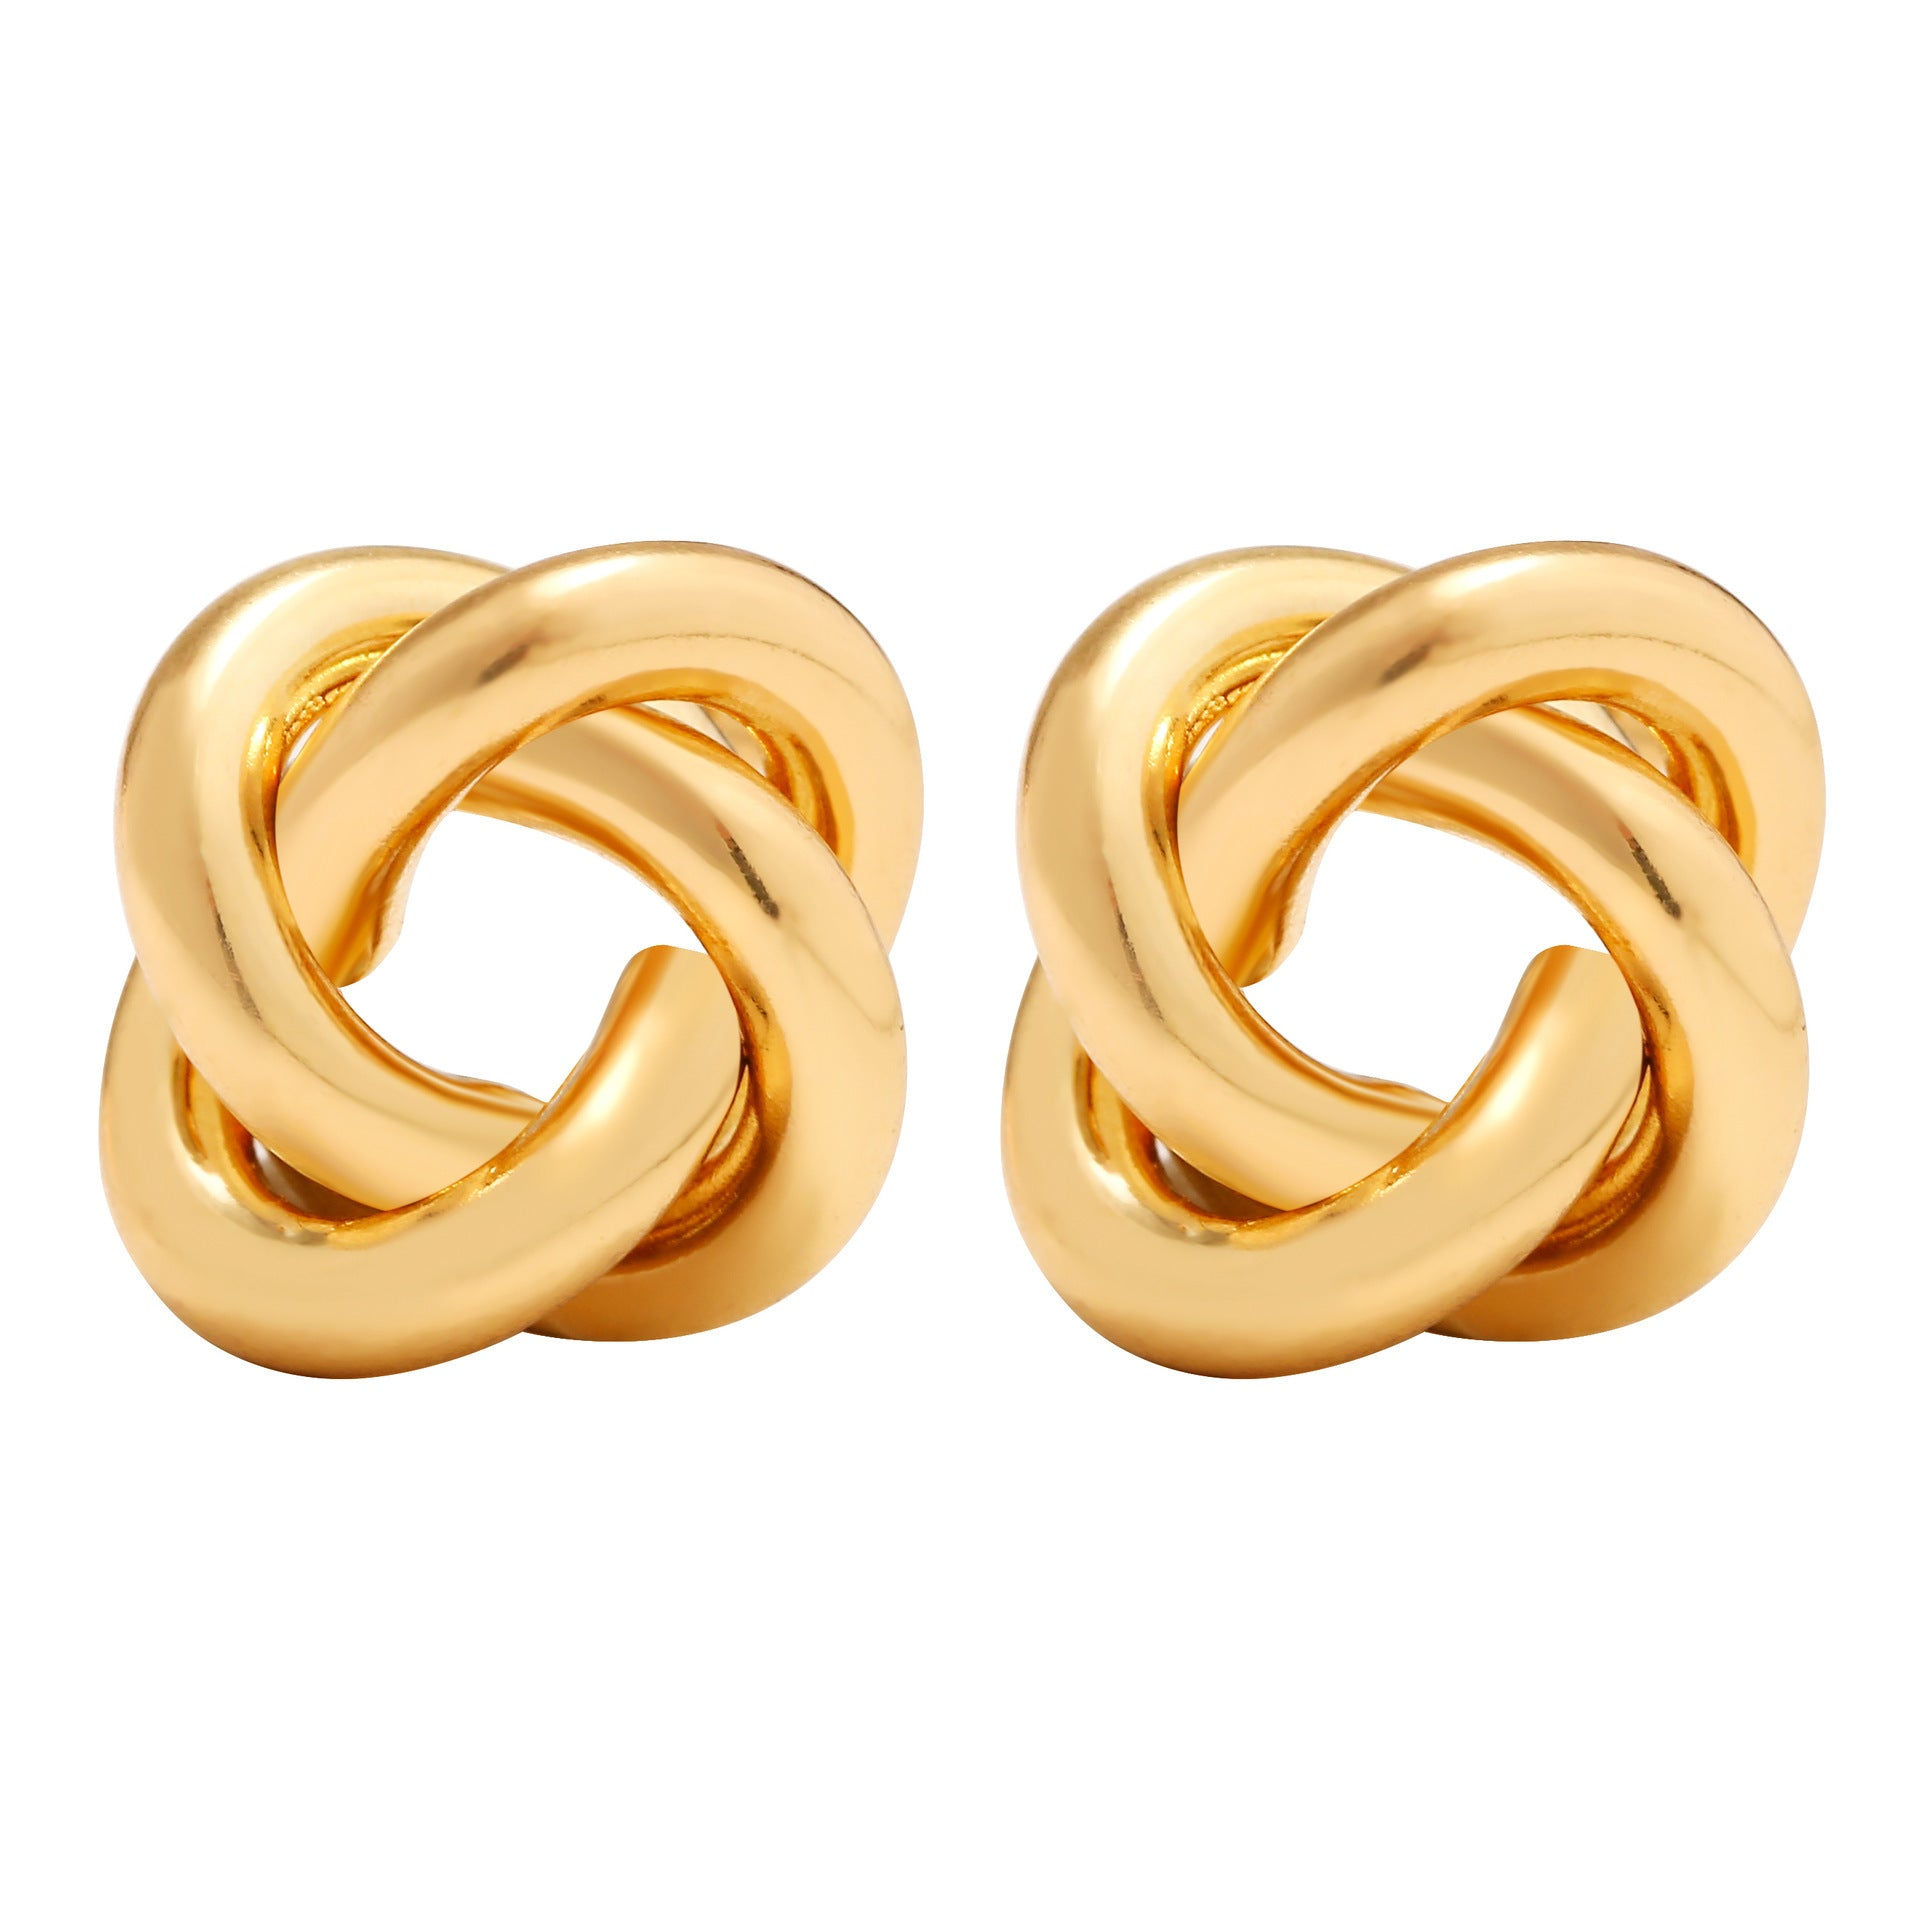 New fashion jewelry Europe and America personality alloy circle winding tide female earrings temperament popular earrings foreign trade wholesale